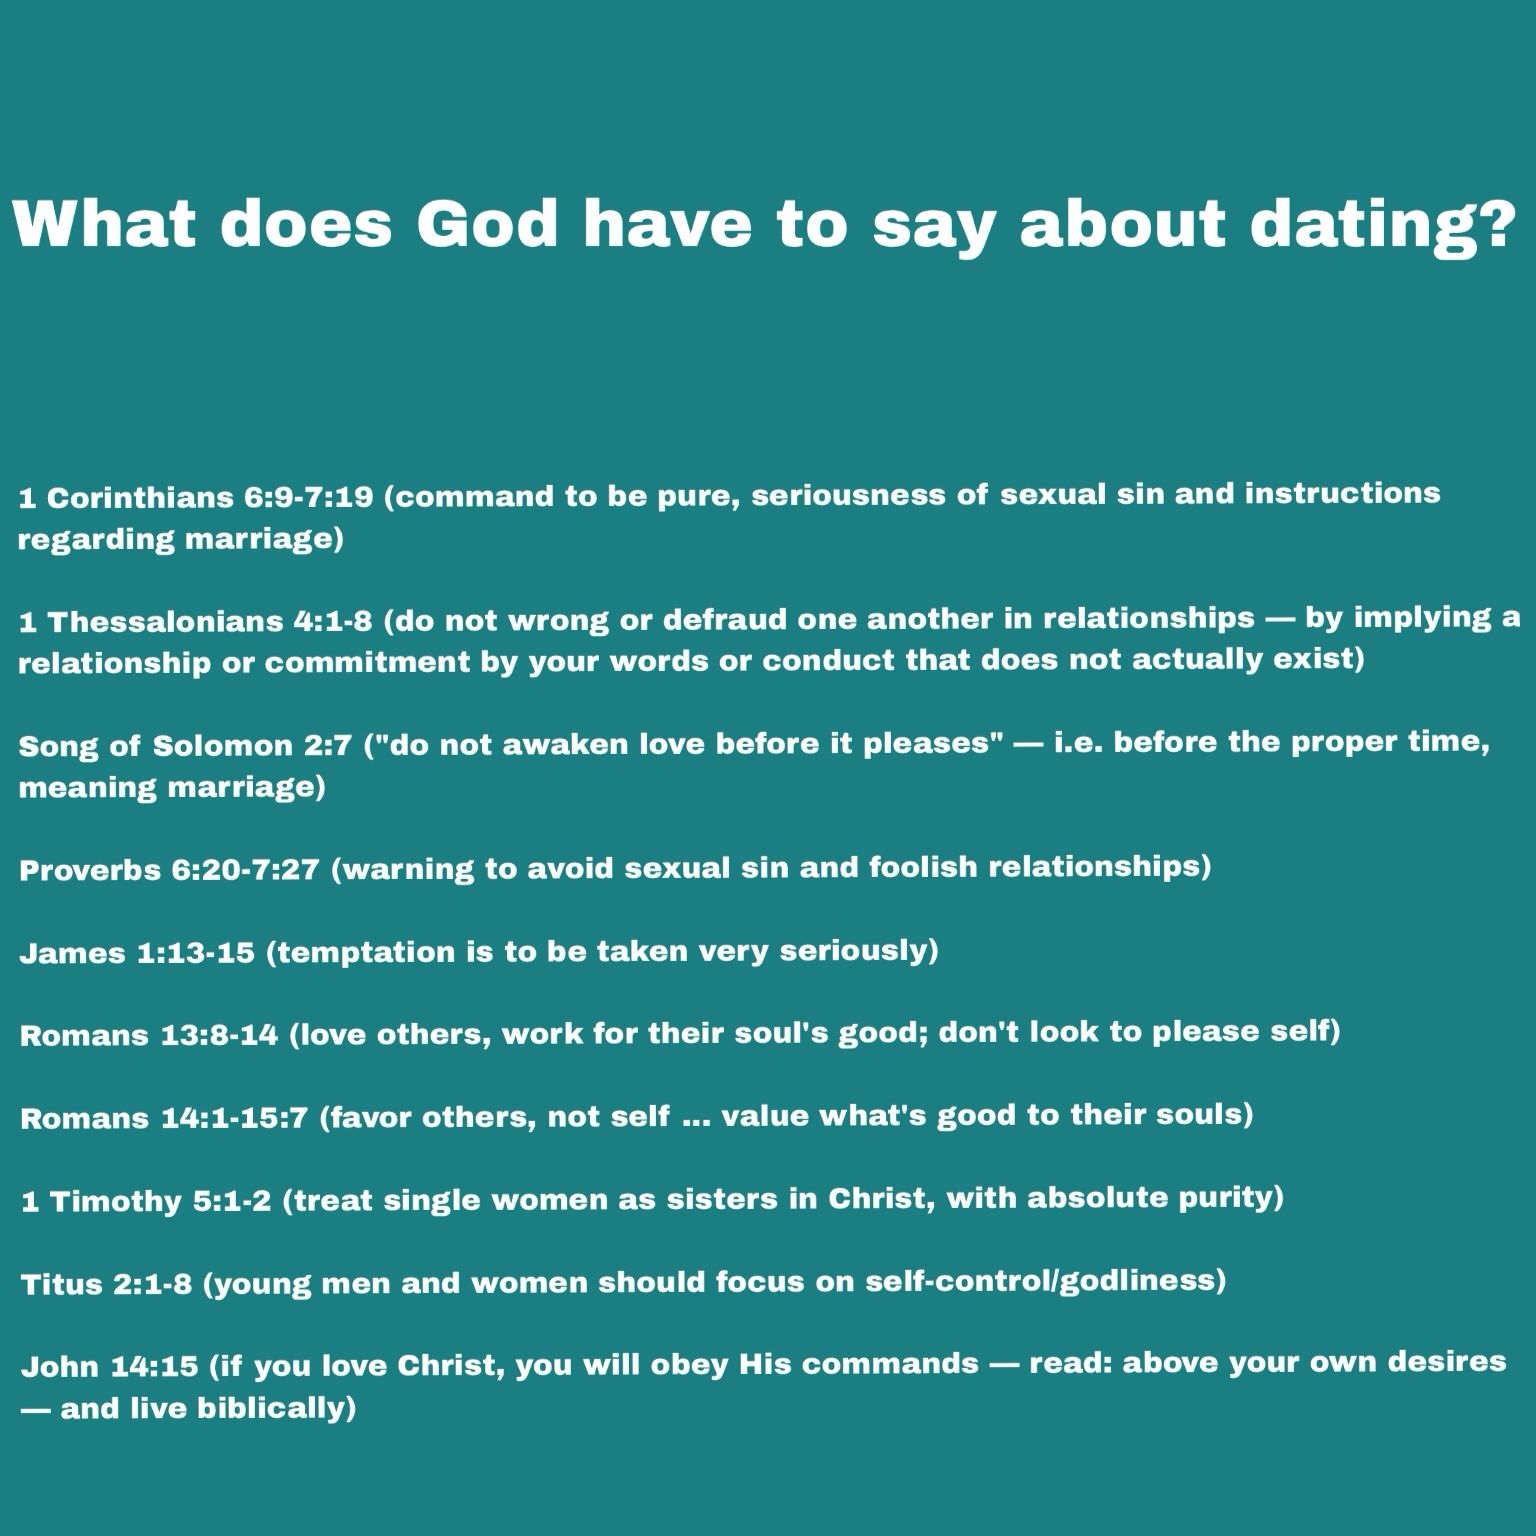 is dating a sin Should a christian use a dating service to find a spouse question: should a christian use a christian dating service to find a spouse  life-altering sin that could endanger the marriage a christian man should take the lead in relationships and making sure their relationship glorifies christ in all things a christian woman should let.